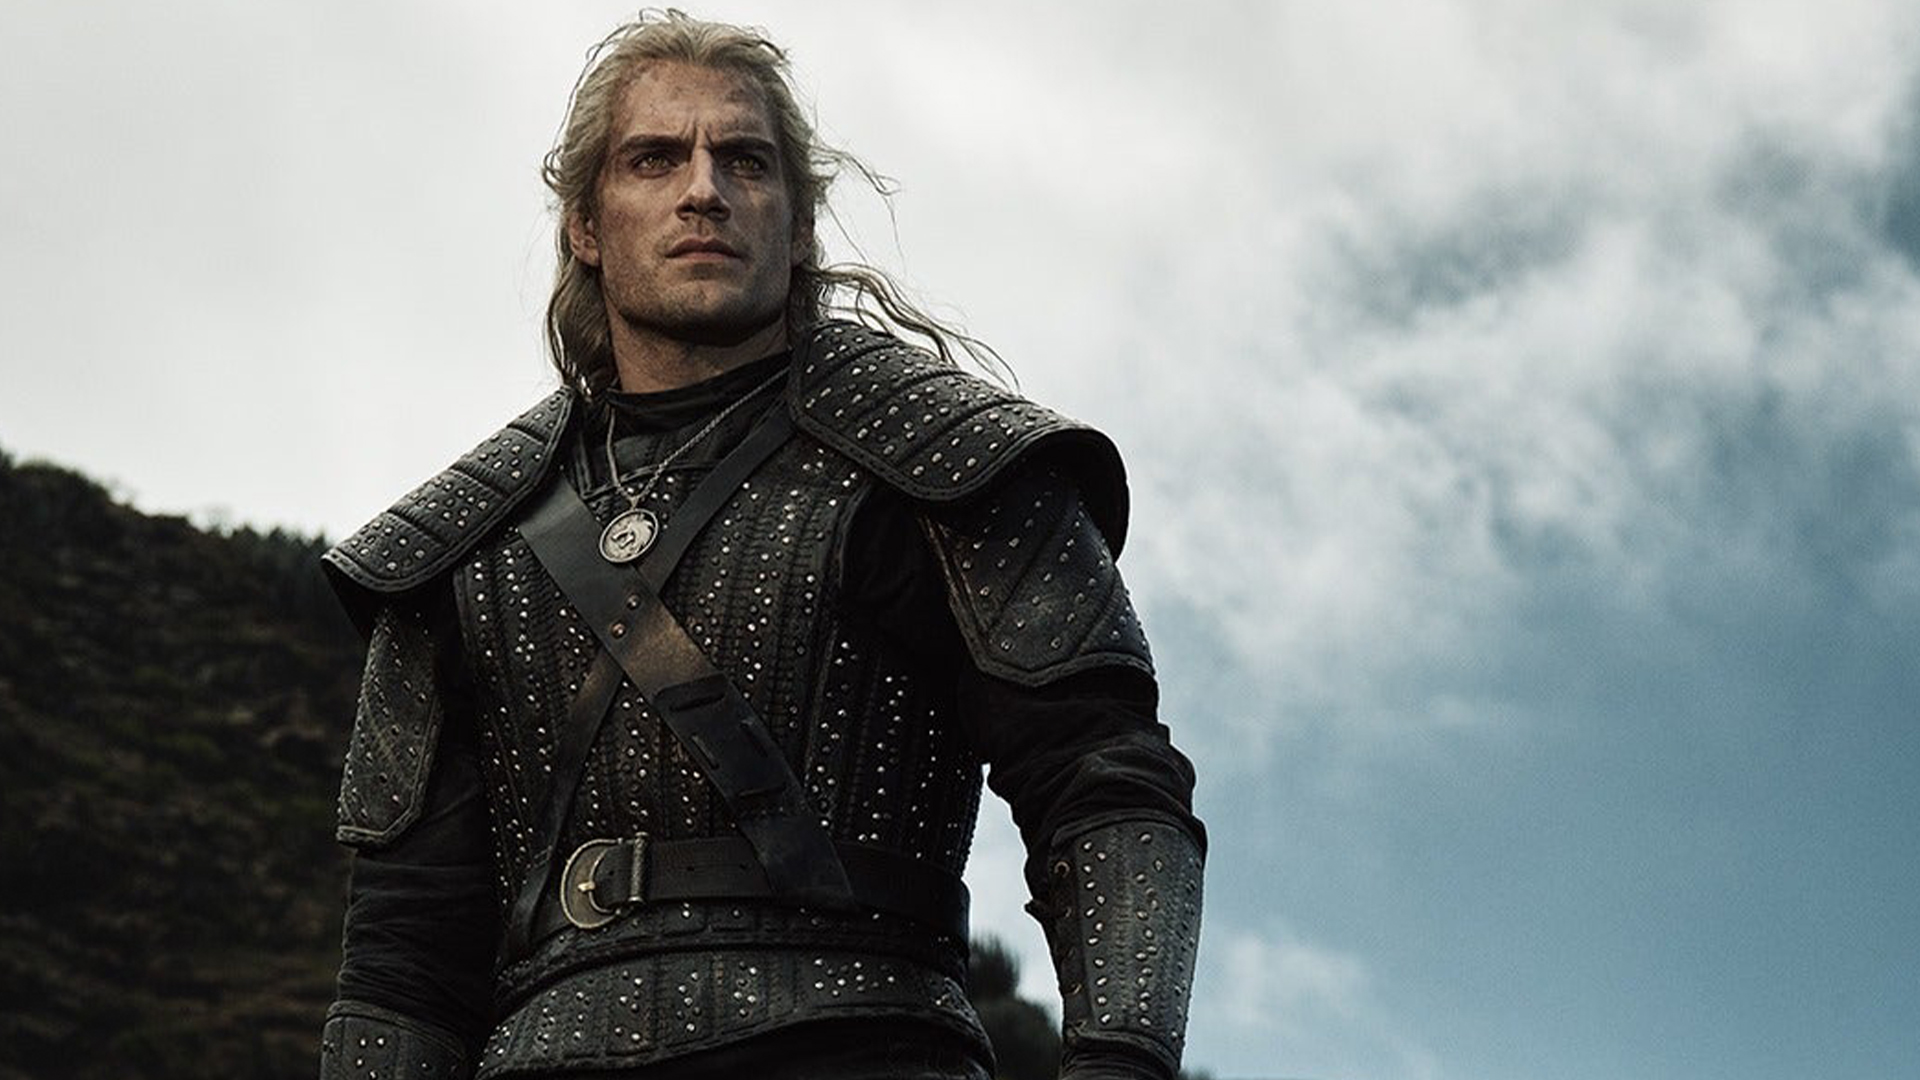 Looks like filming on Netflix's The Witcher Season 2 has wrapped